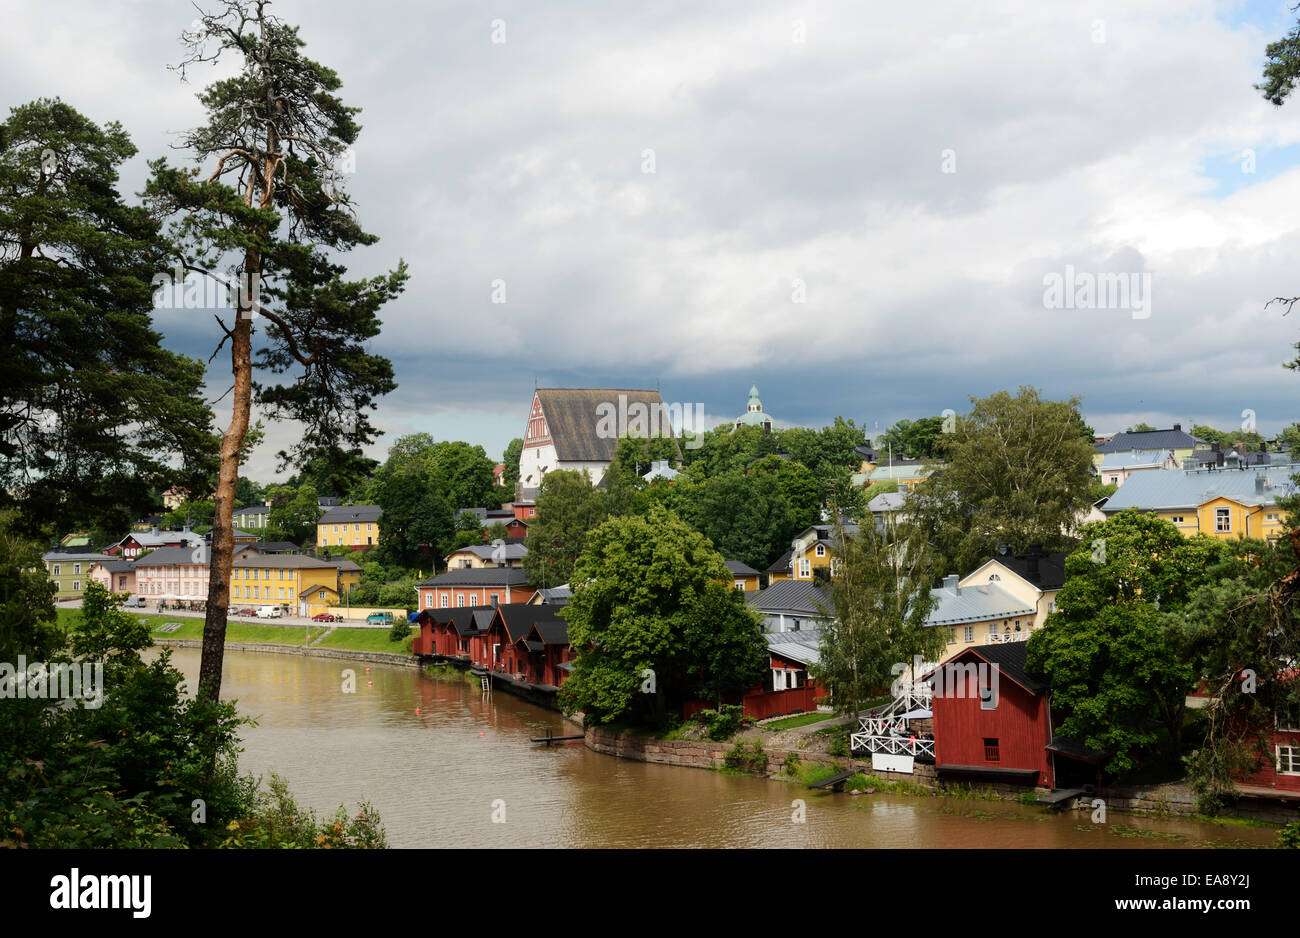 view of the ancient city Porvoo, Finland, Europe - Stock Image